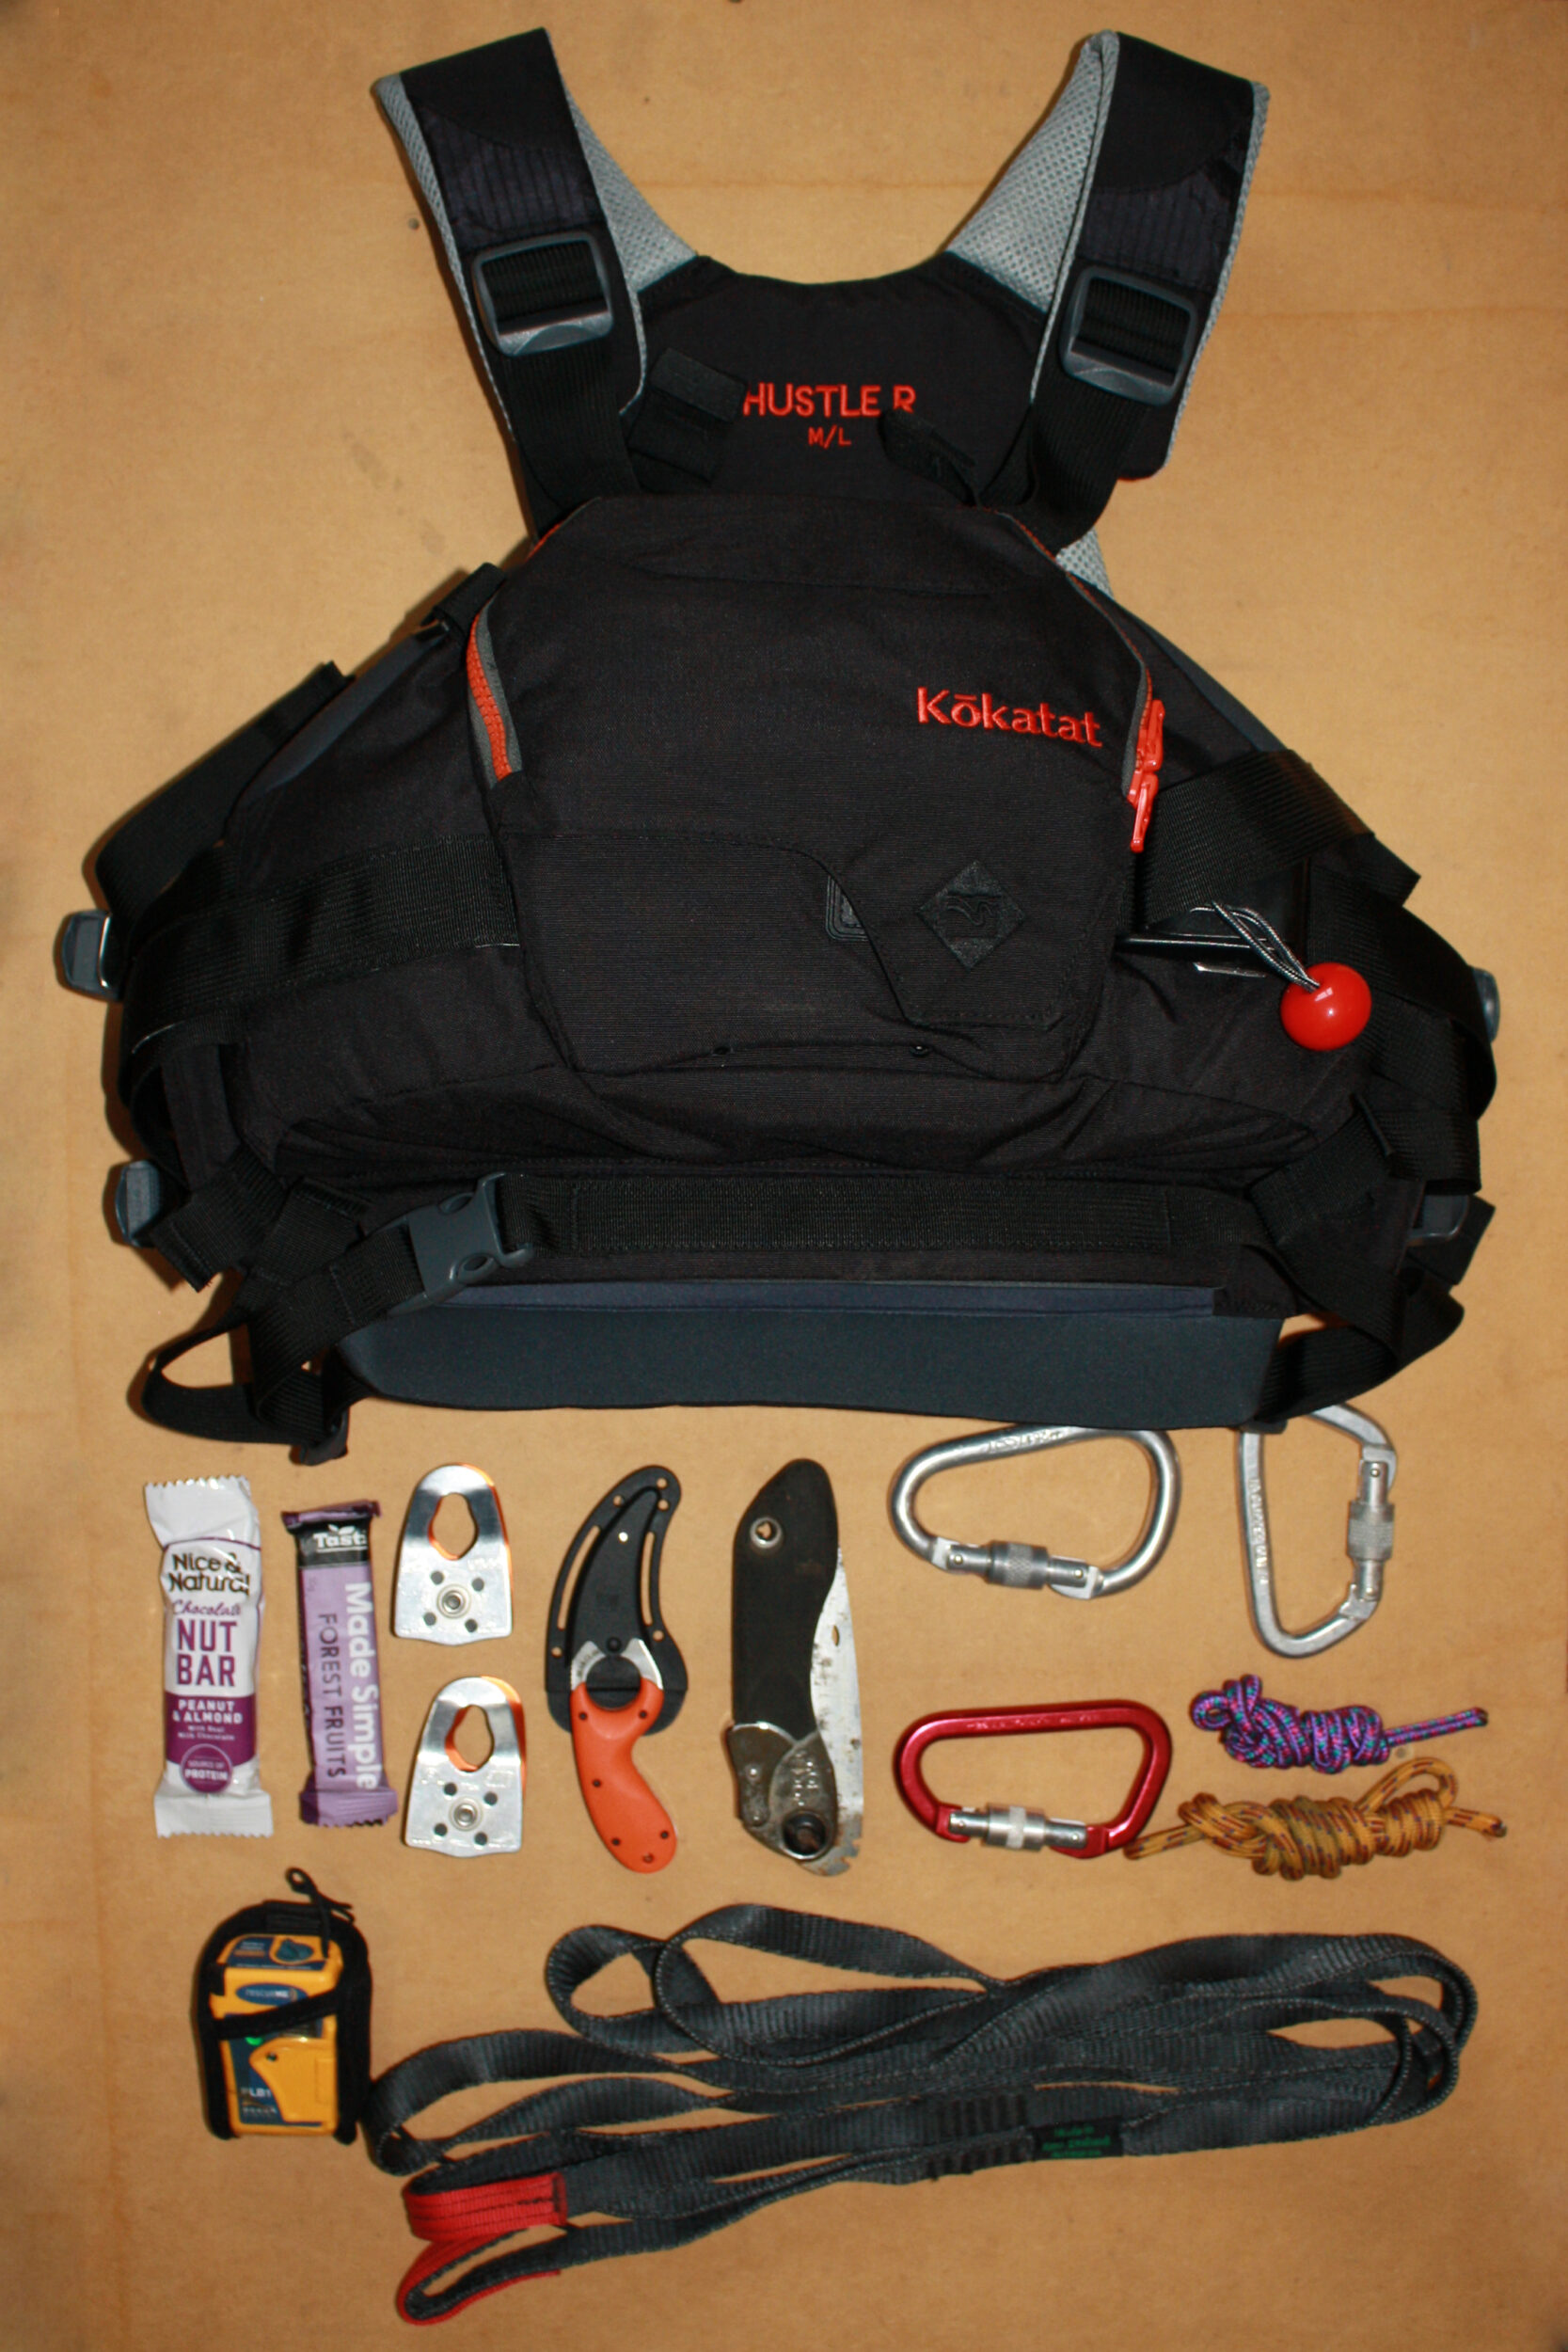 What fits in the pocket of a Kokatat HussleR rescue PFD